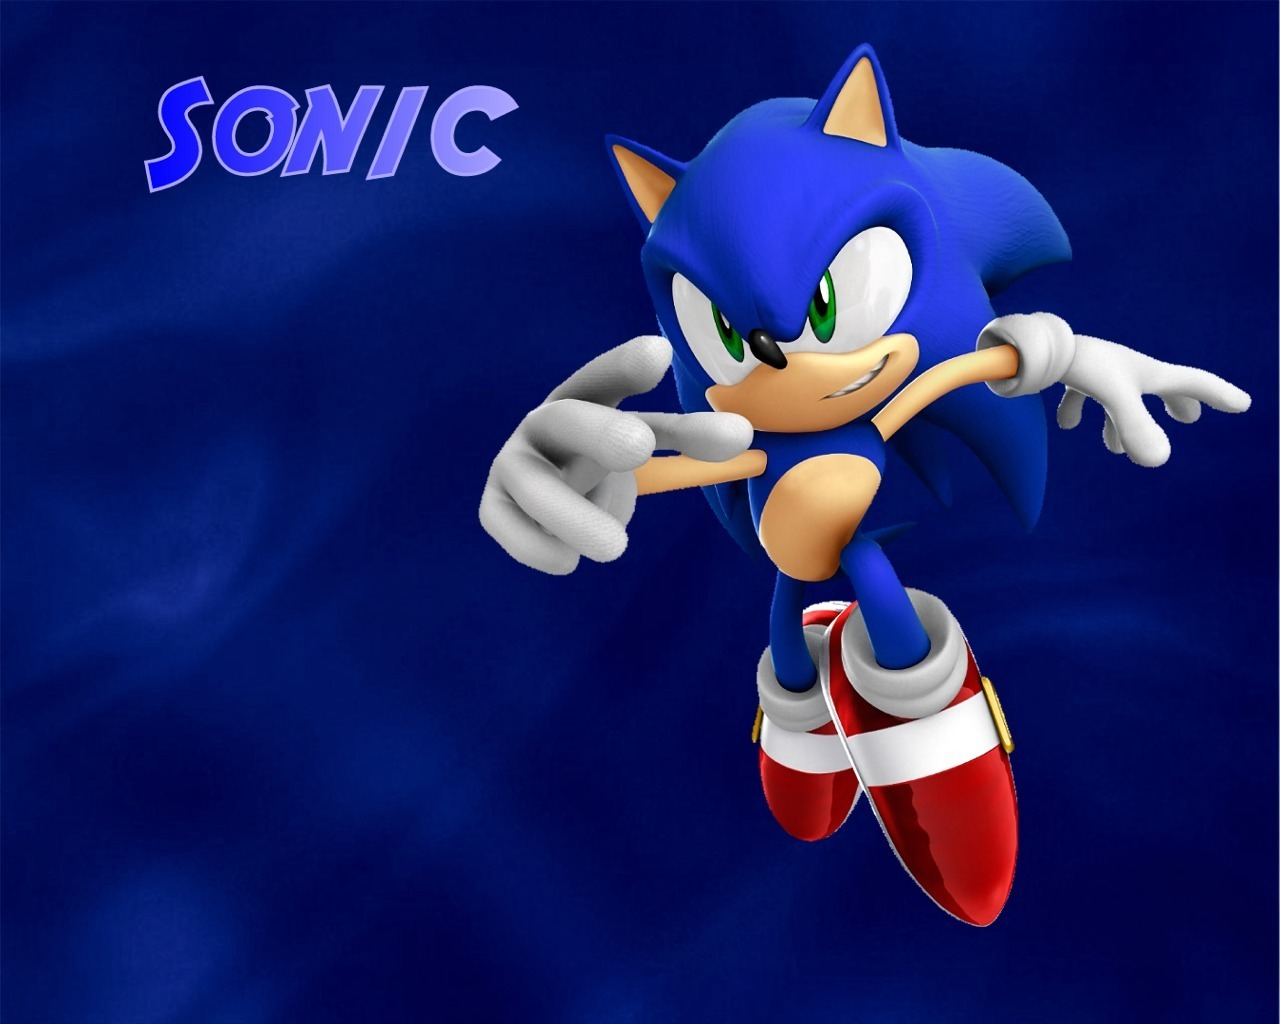 Sonic The Hedgehog Images Sonic Wallpapers Hd Wallpaper And